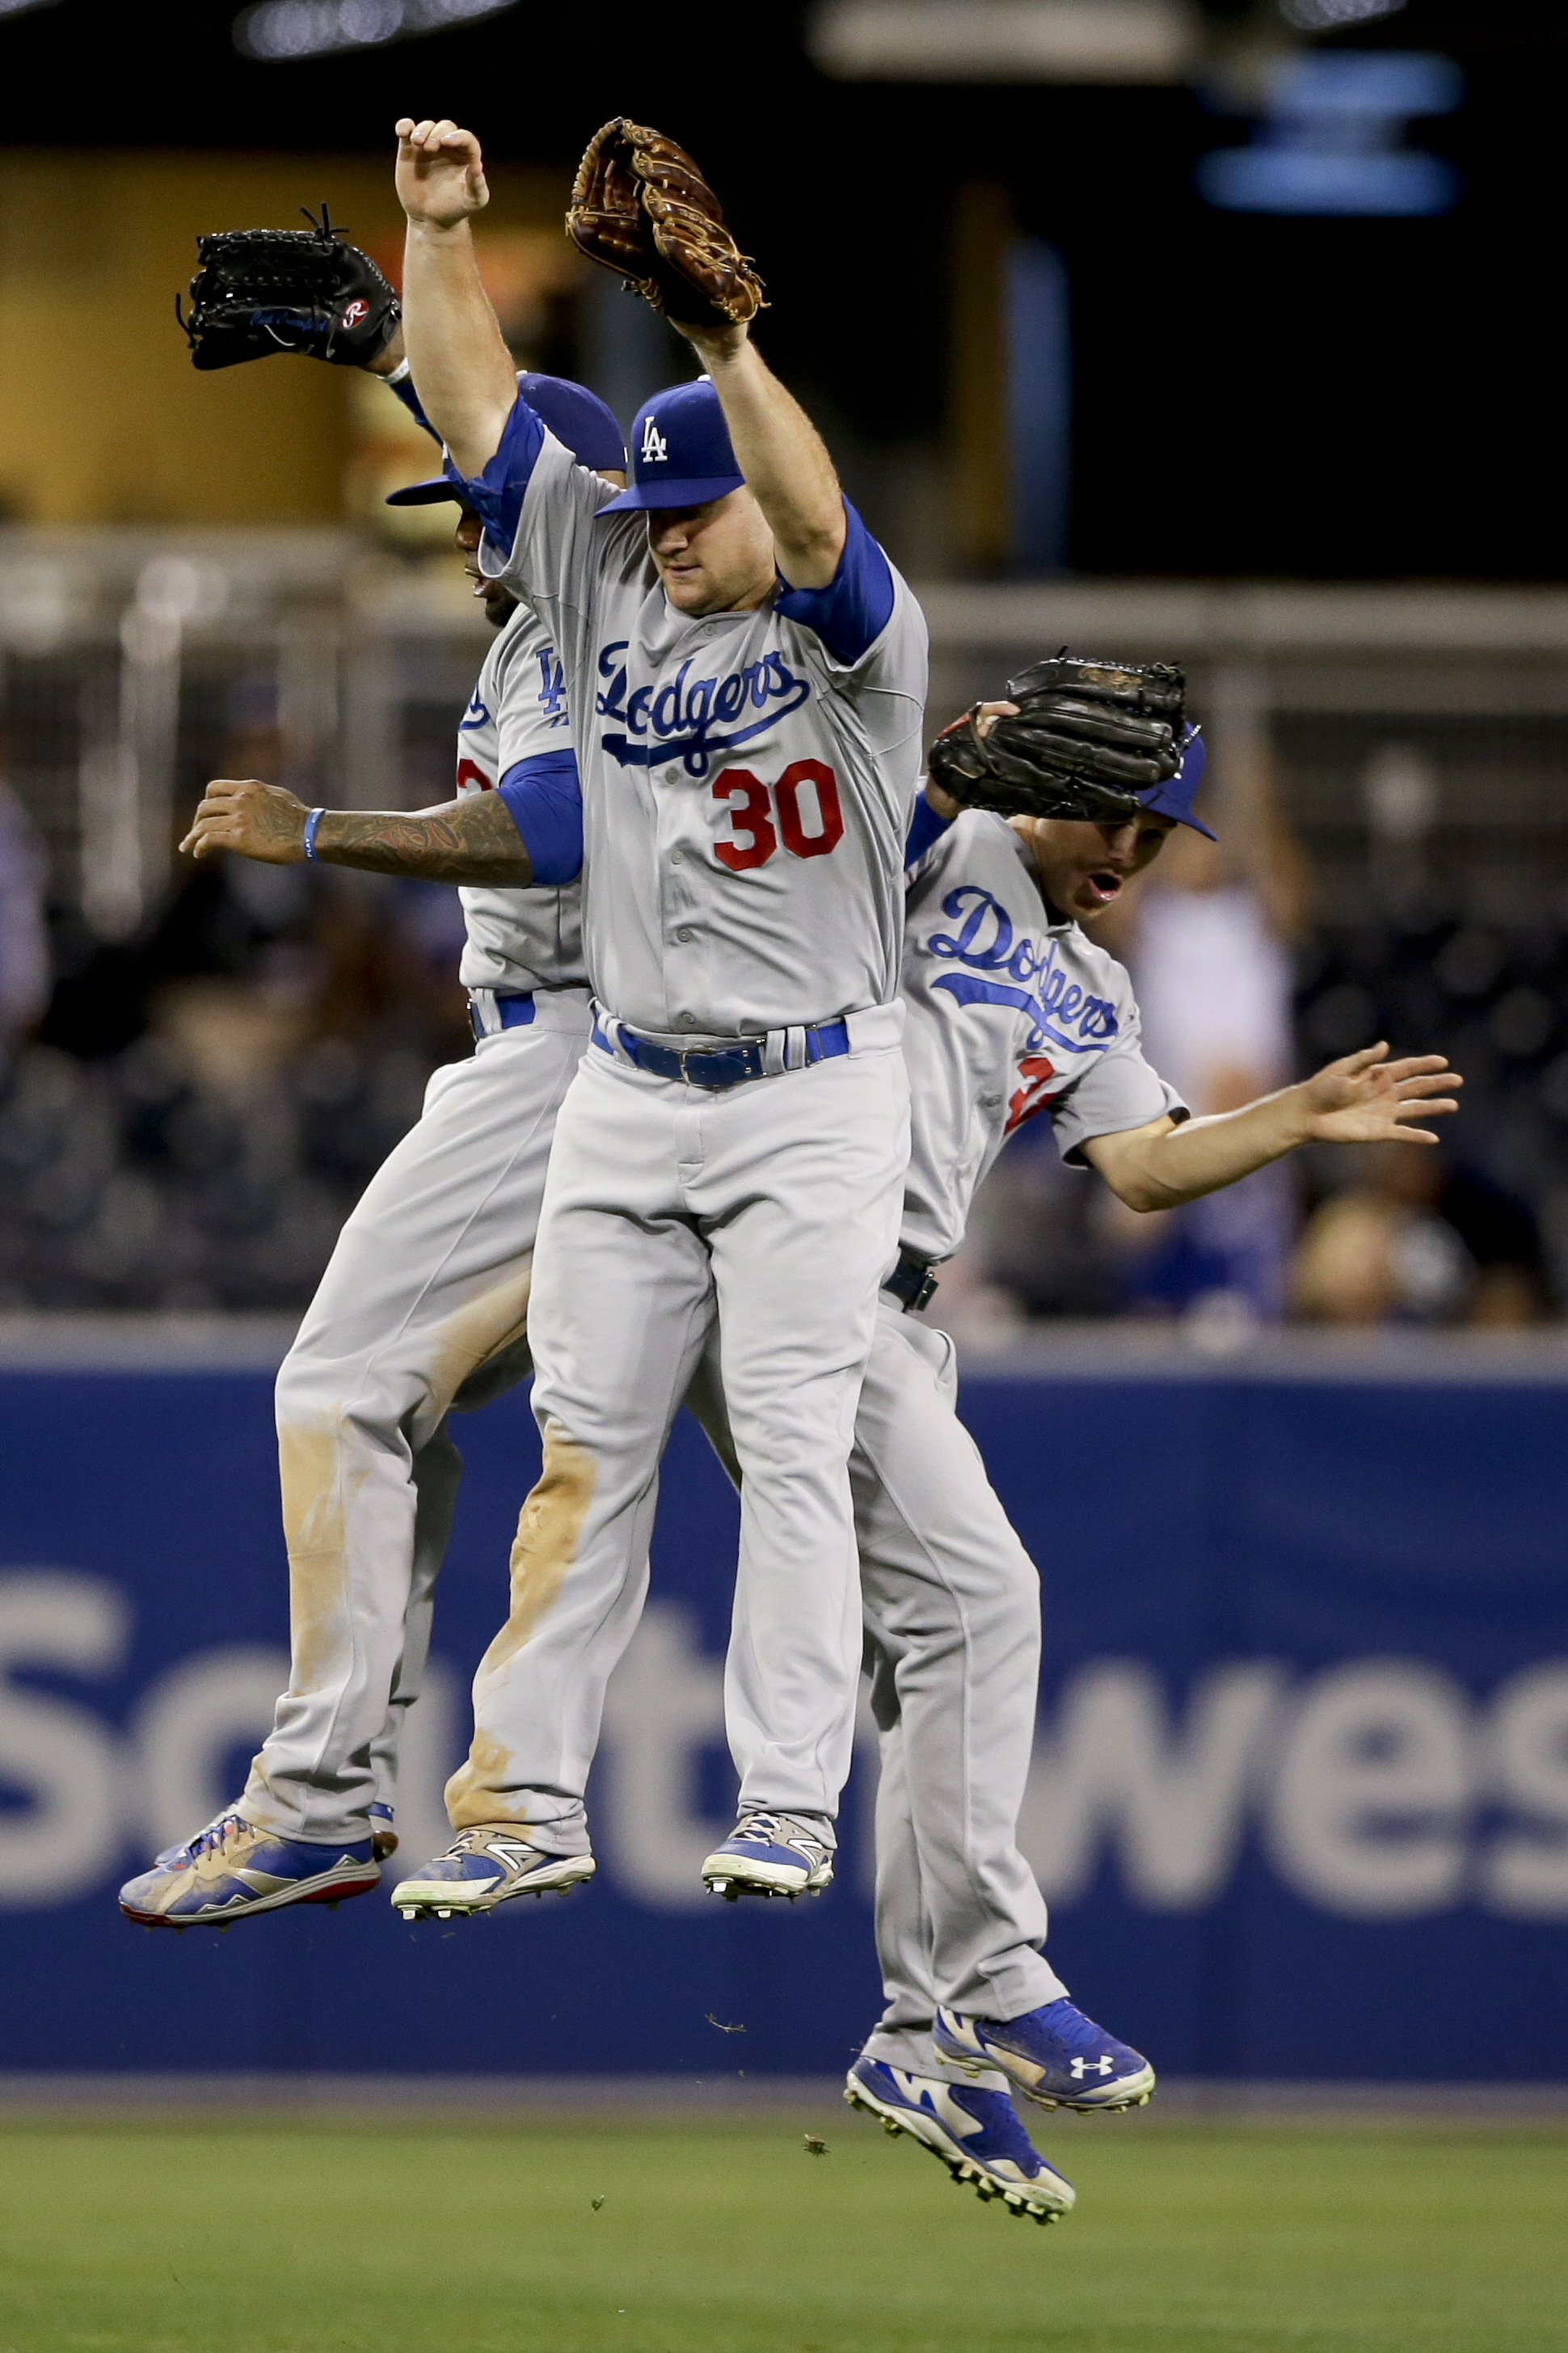 Los Angeles Dodgers left fielder Scott Schebler, center, celebrates with teammates center fielder Joc Pederson, right, and left fielder Carl Crawford, left, after their defeat of the San Diego Padres in a baseball game Friday, Sept. 4, 2015 in San Diego.